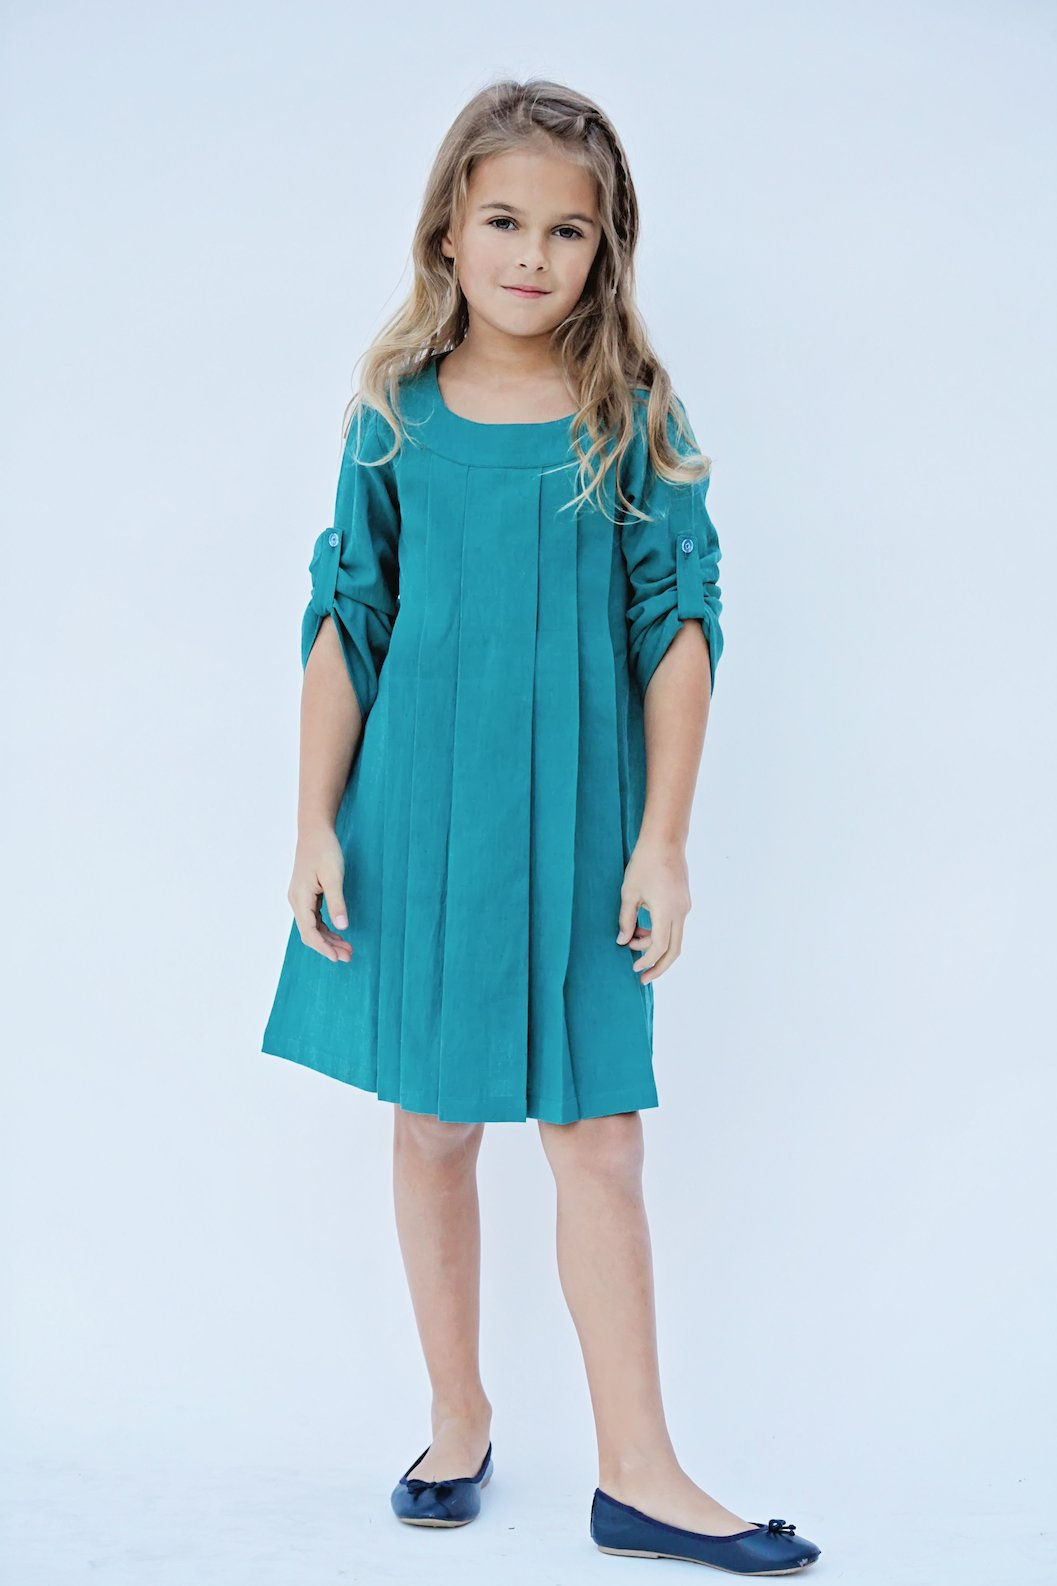 Teal Pleated Full Sleeves Shift Dress - Kids Clothing, Dress - Girls Dress, Yo Baby Online - Yo Baby